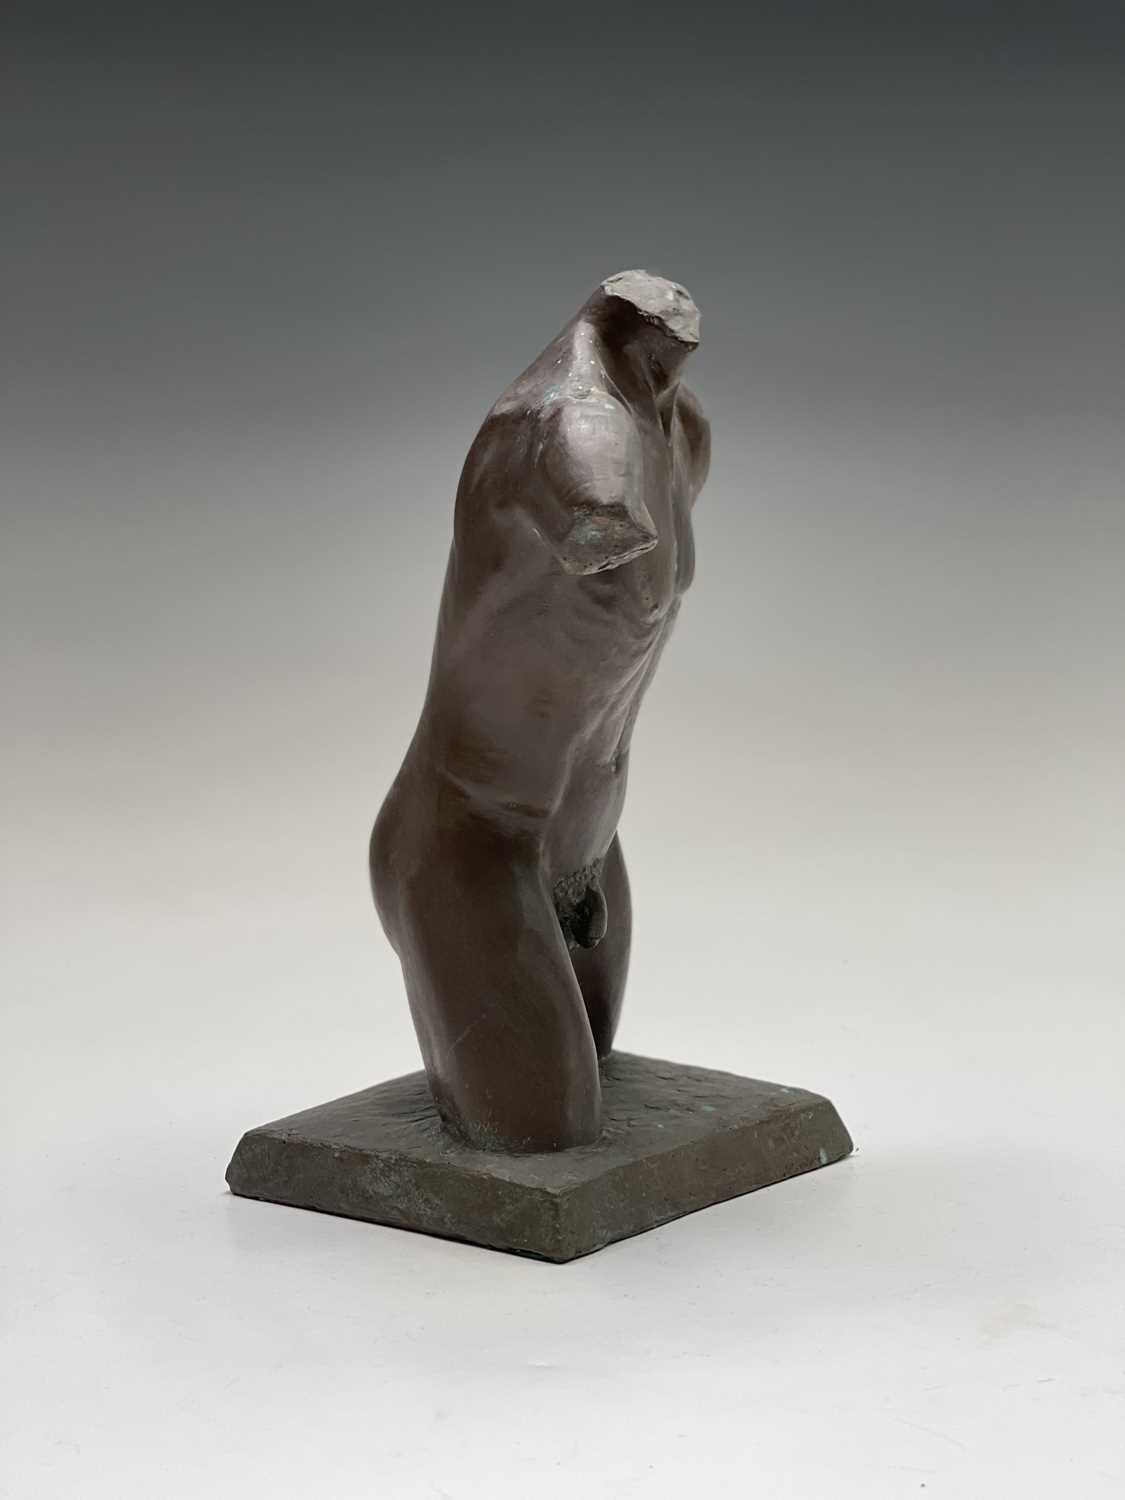 Alec WILES (1924)Males Torso Bronzed resin sculpture Signed and dated 1995Height 27cm - Image 6 of 10